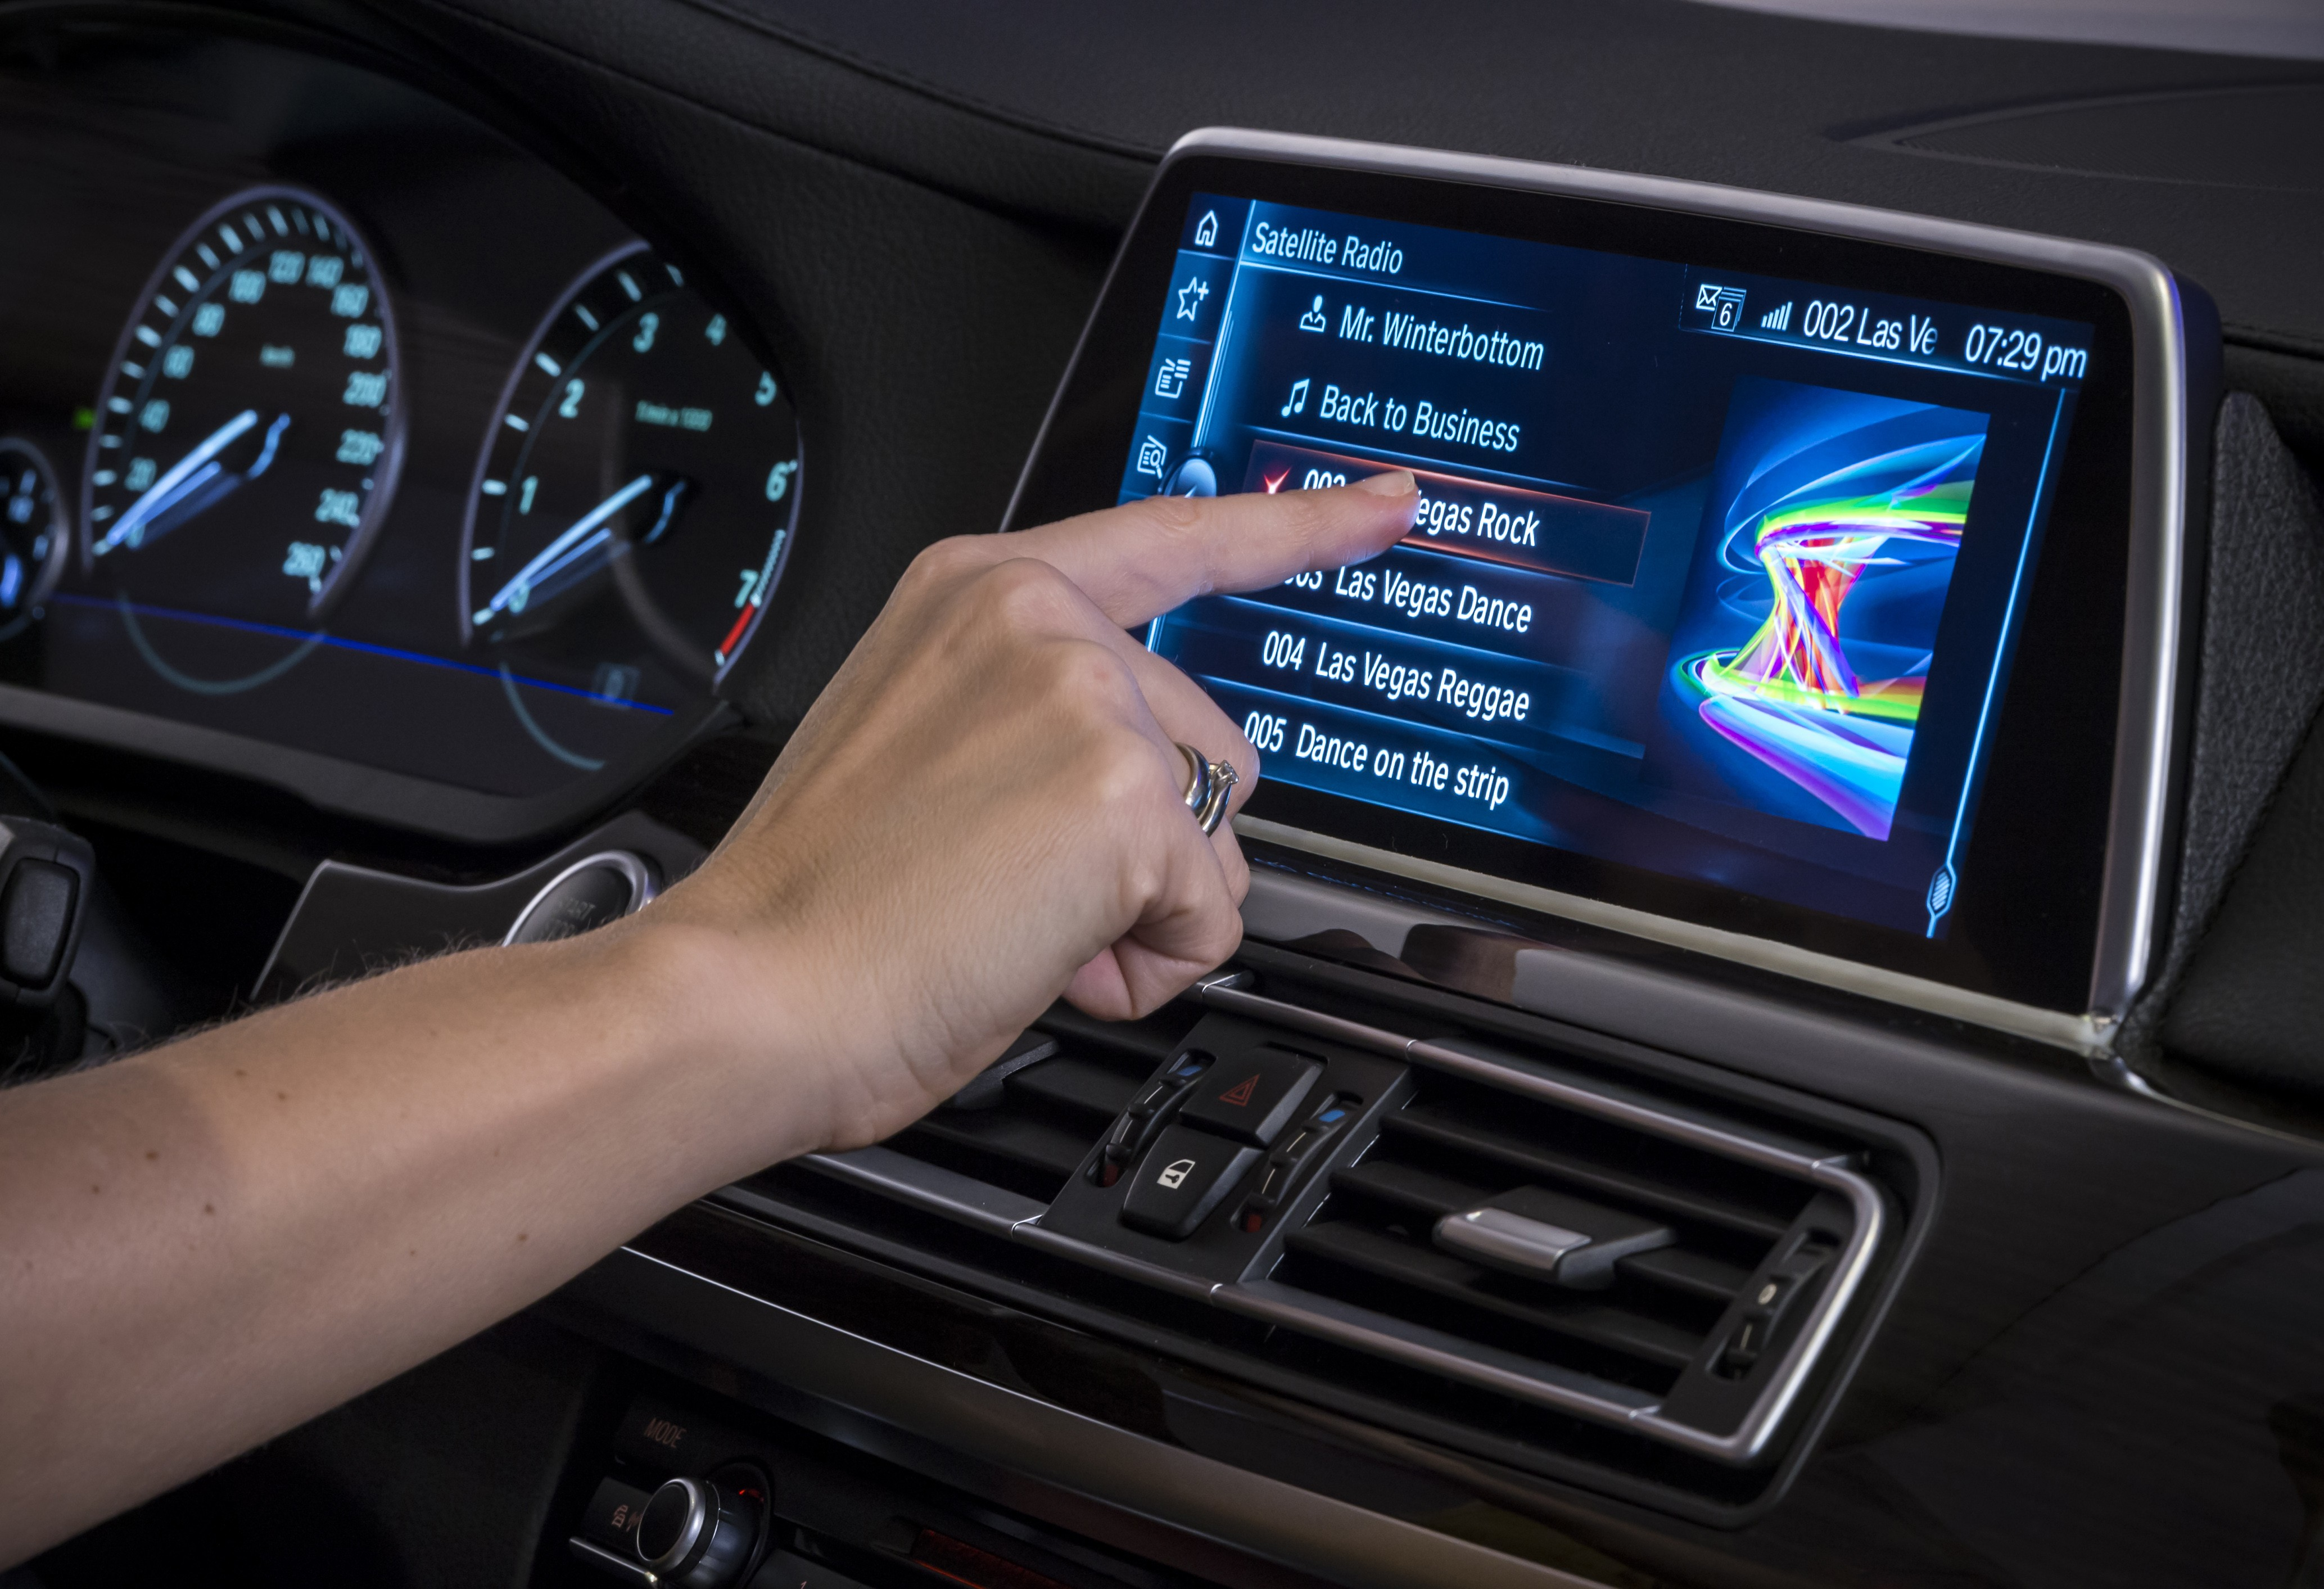 Next Gen IDrive With Gesture Control And Touchscreen Unveiled At 2015 CES Autoevolution